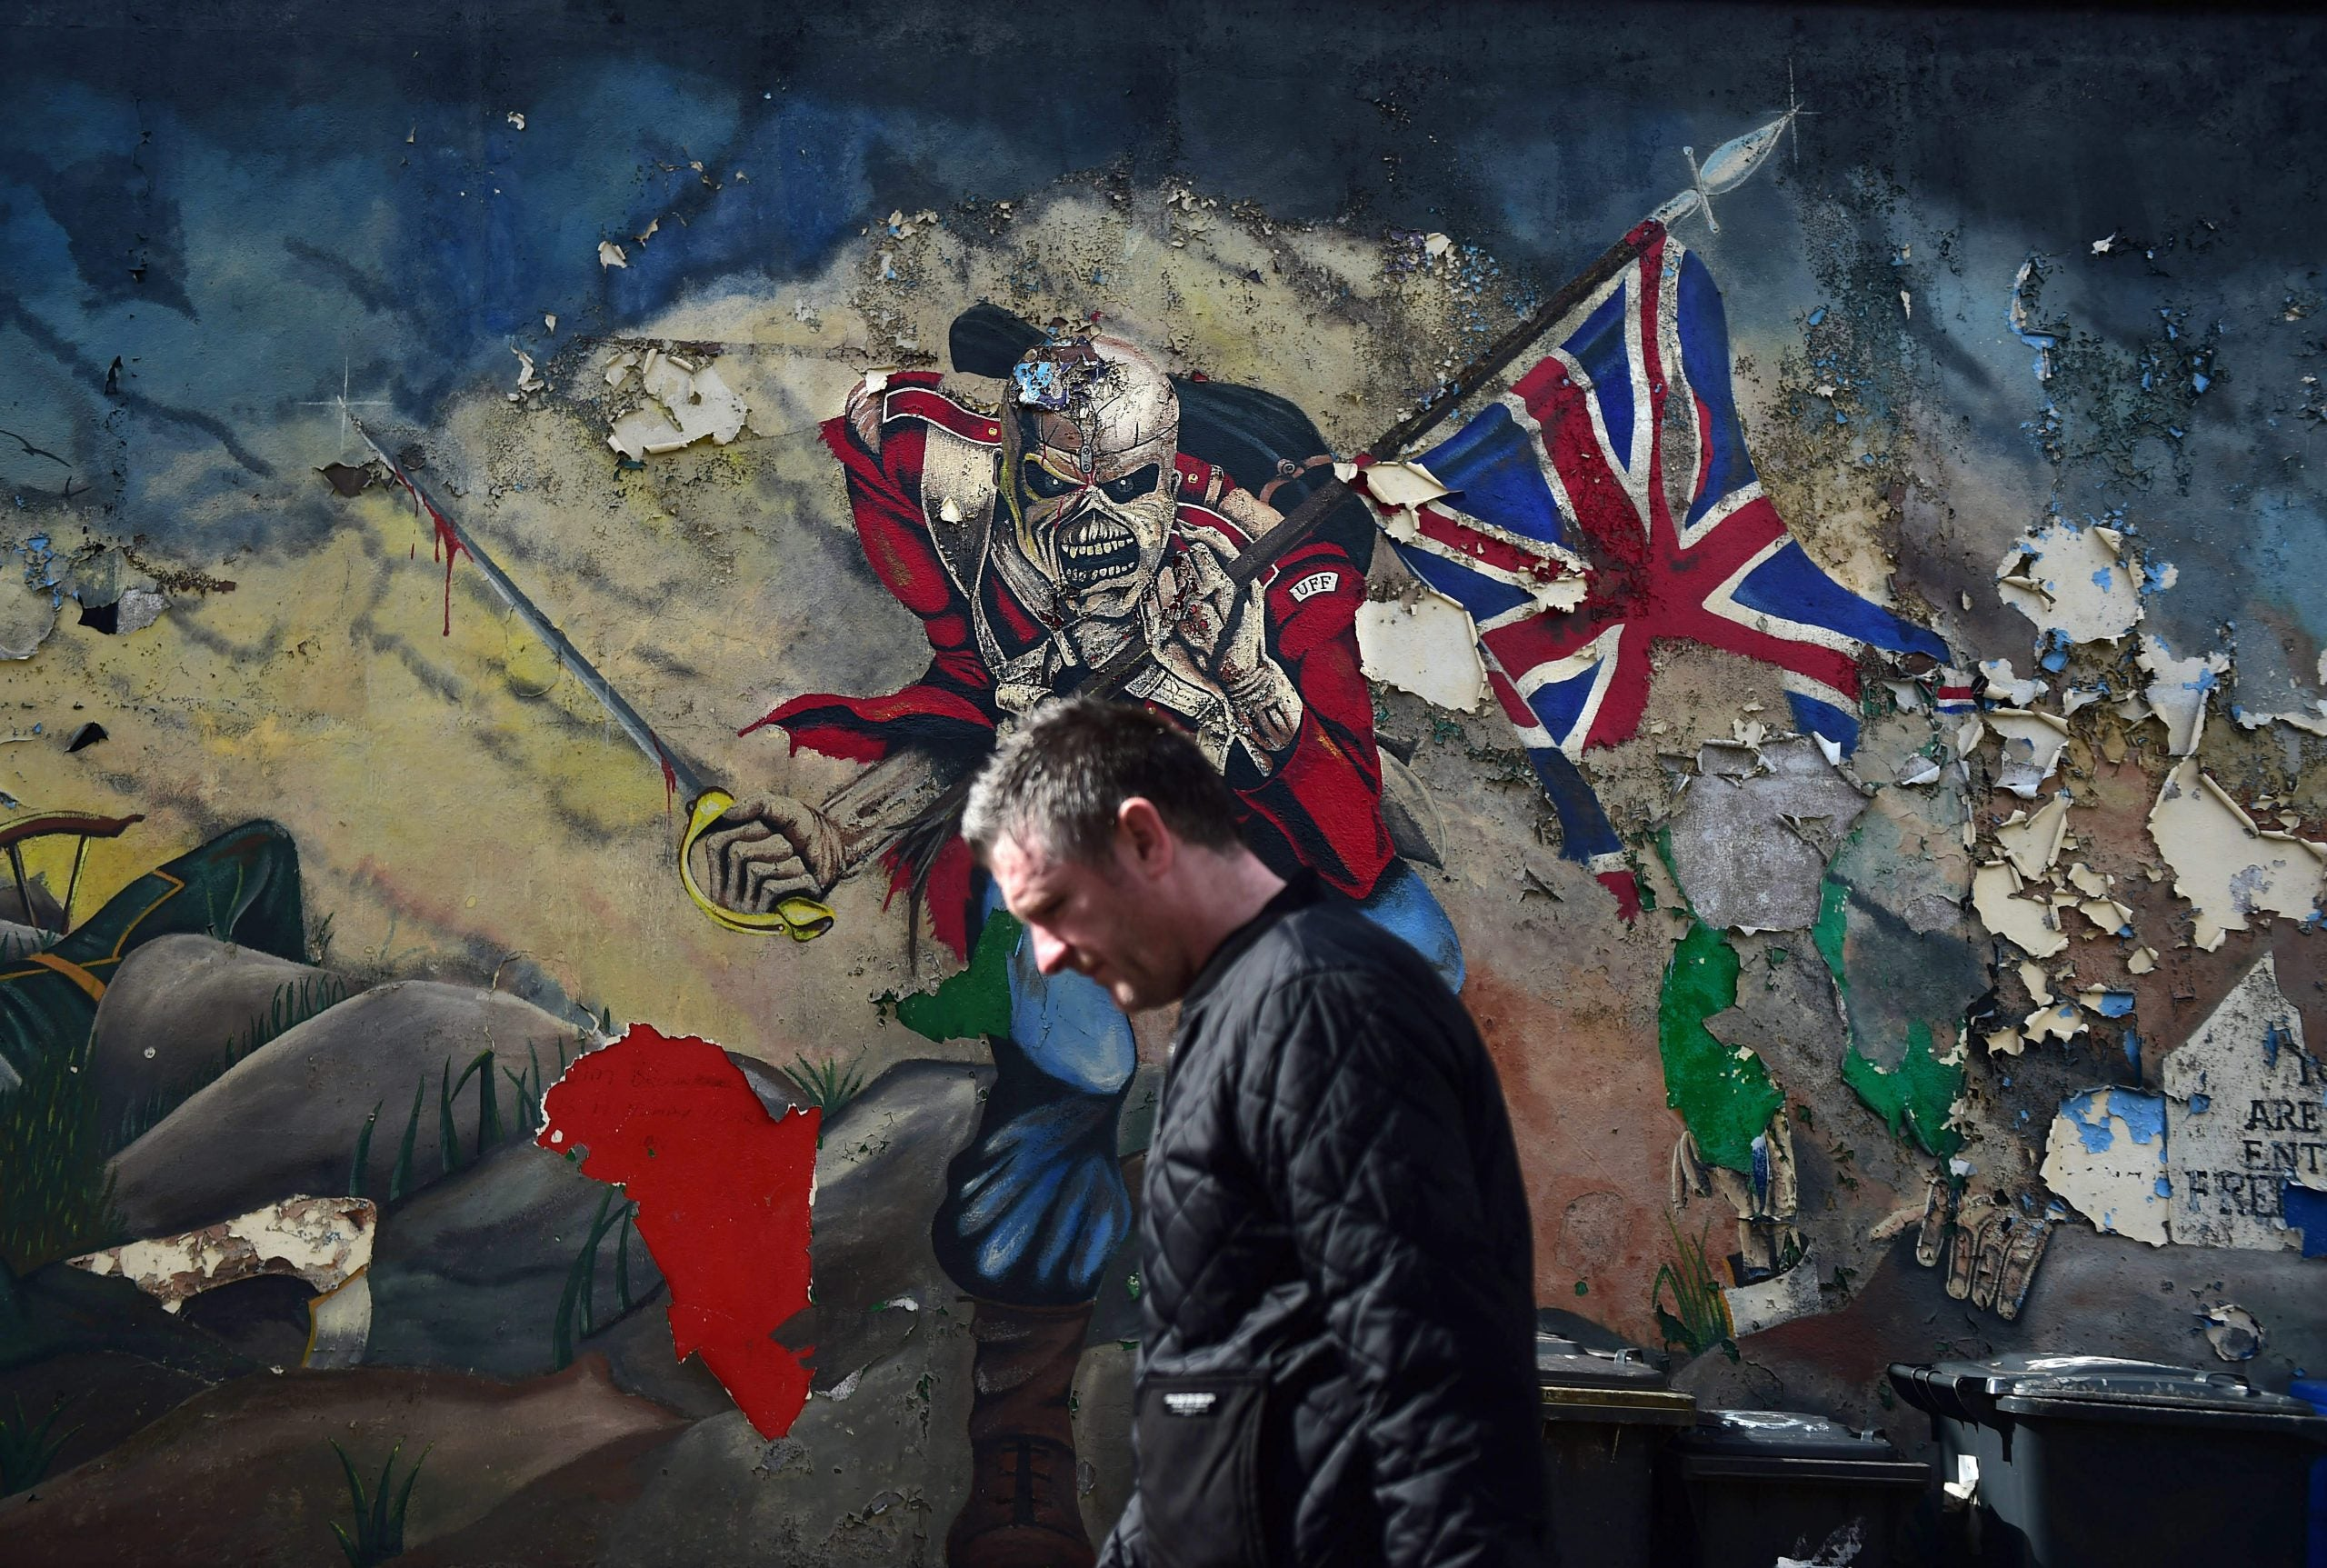 Overlooking the effect of Brexit on Northern Ireland is dangerous for the whole UK